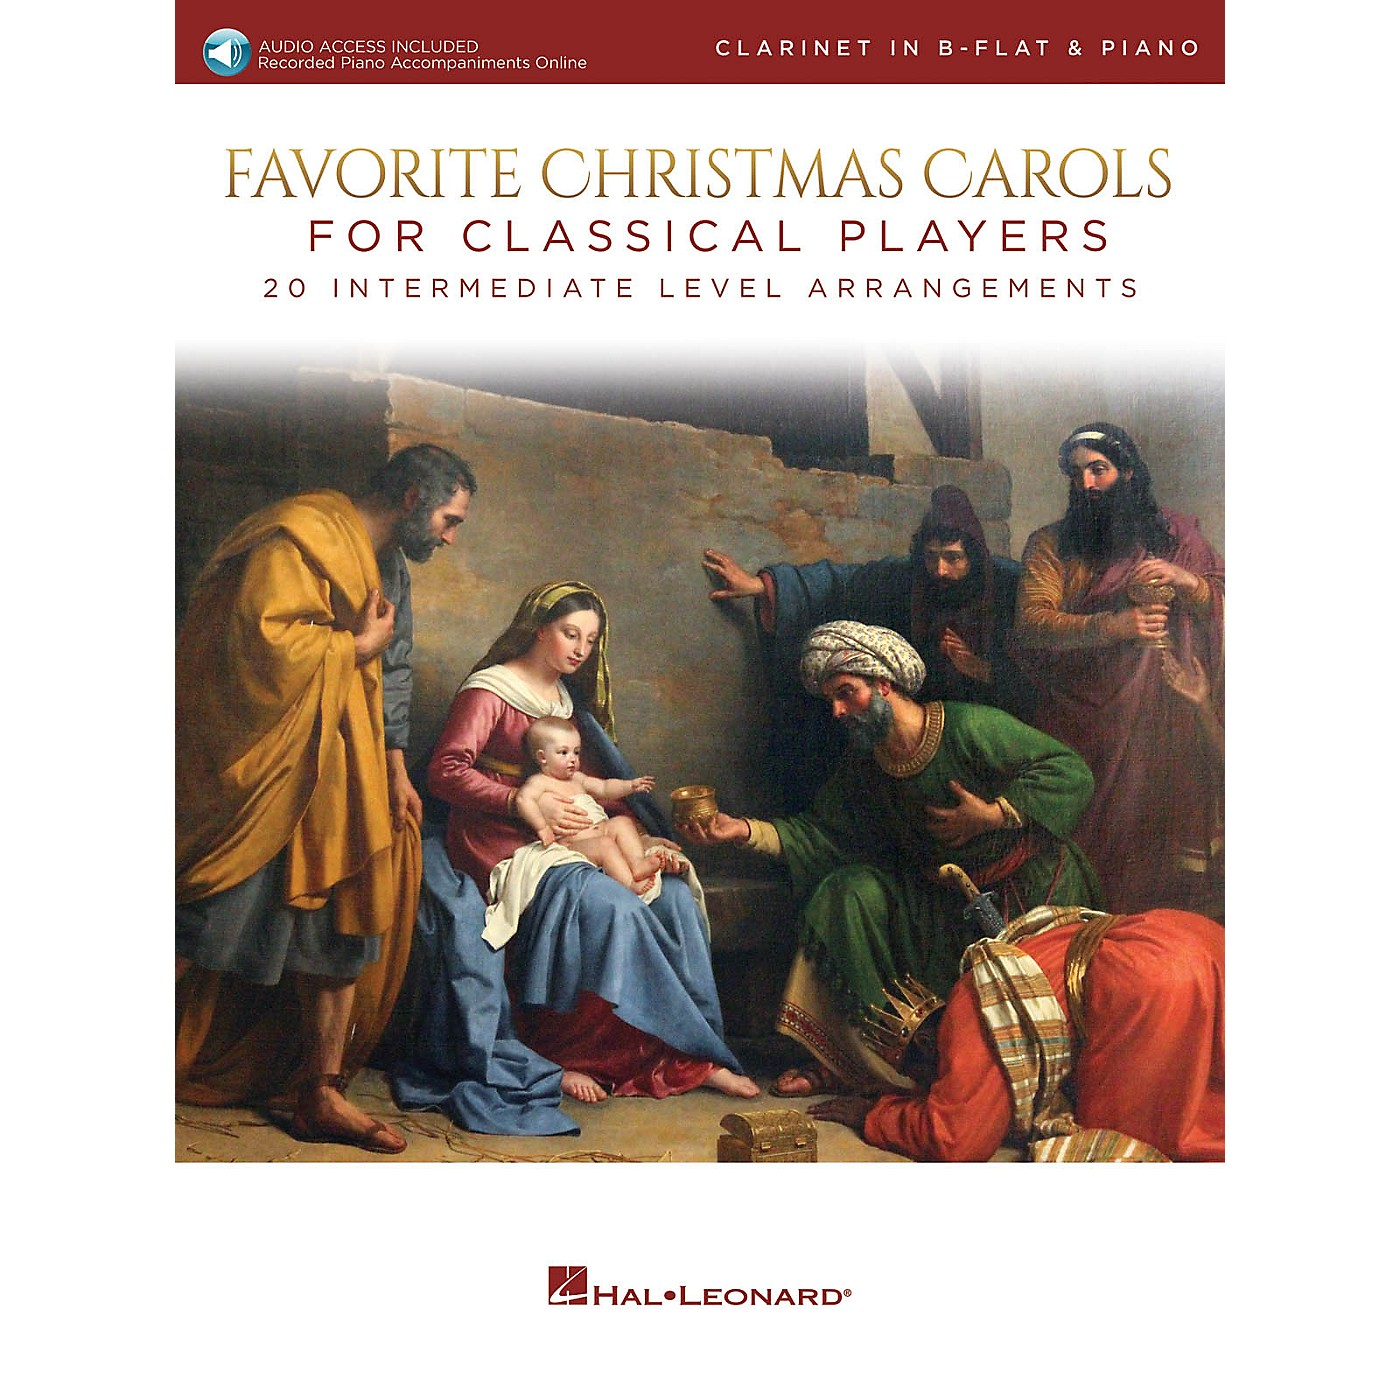 Hal Leonard Favorite Christmas Carols for Classical Players - Clarinet and Piano Book/Audio Online thumbnail